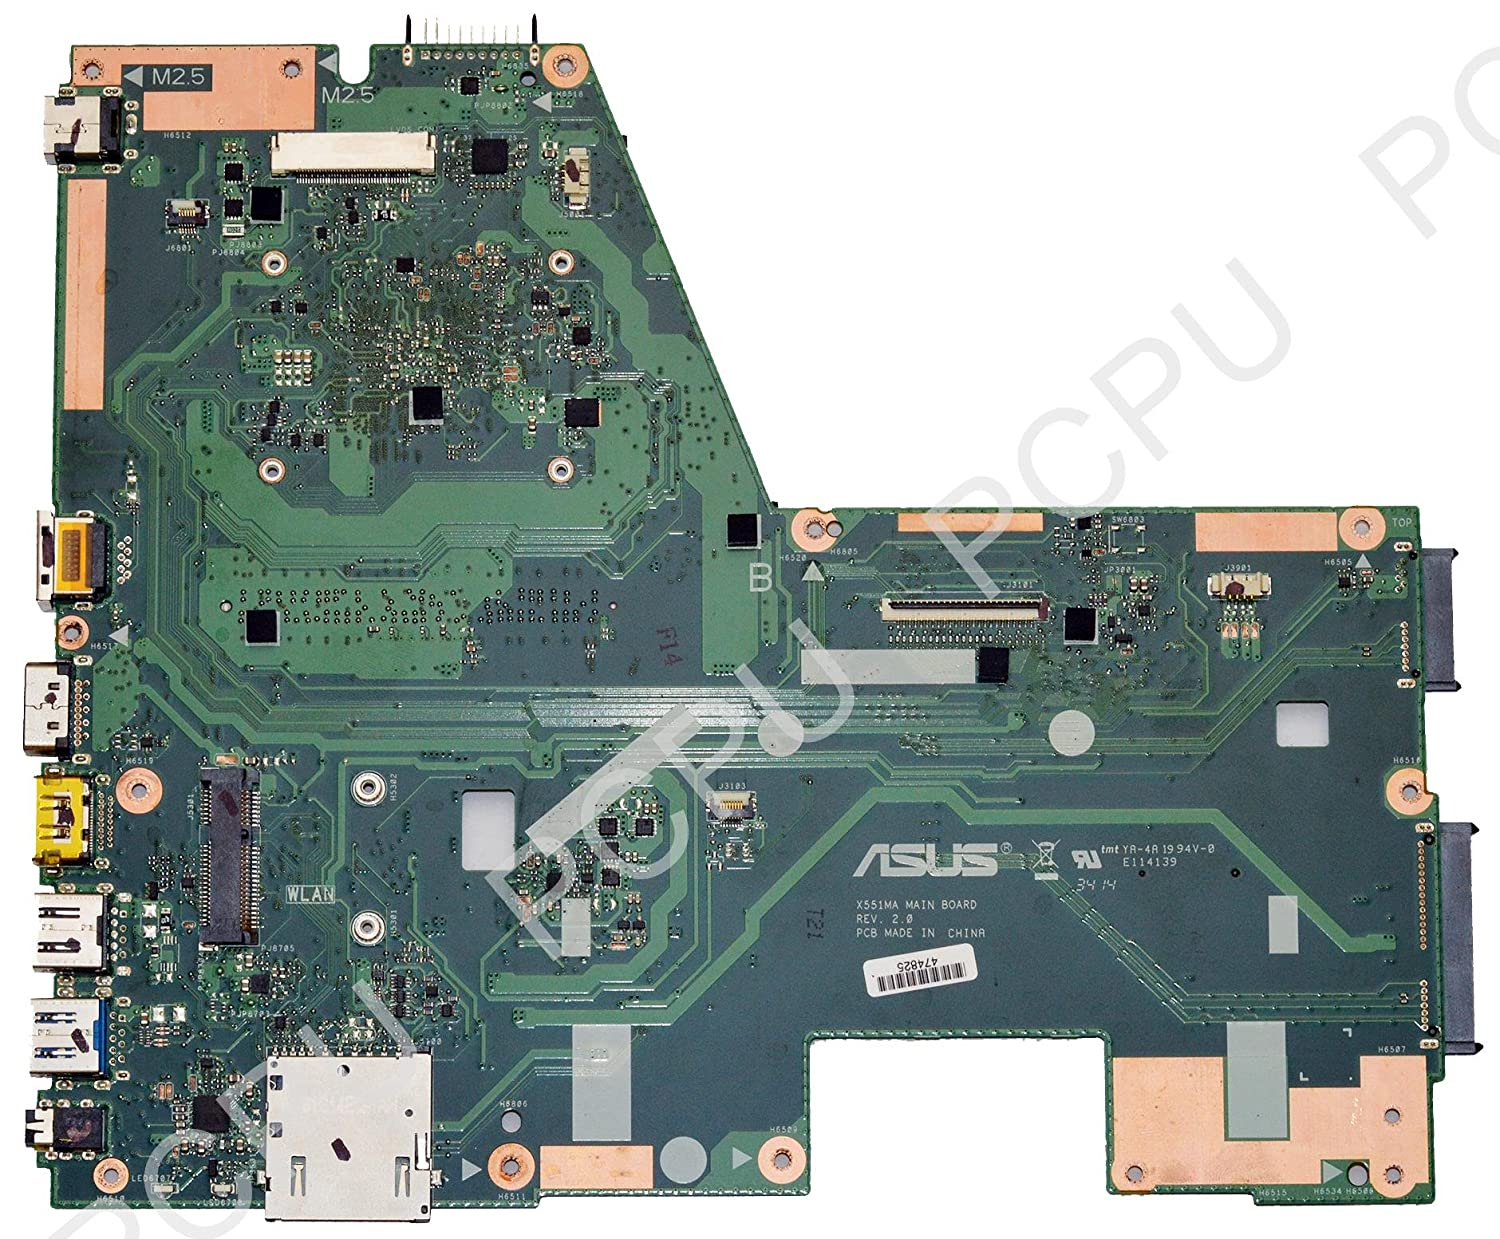 Amazon.com: ASUS 60NB0480-MB2700 Asus X551MA Laptop Motherboard w/ Intel Celeron N2840 2.16Ghz CP 31XJCMB01V0 | Asus X551MA 60NB0480-MB2700 Motherboard: ...